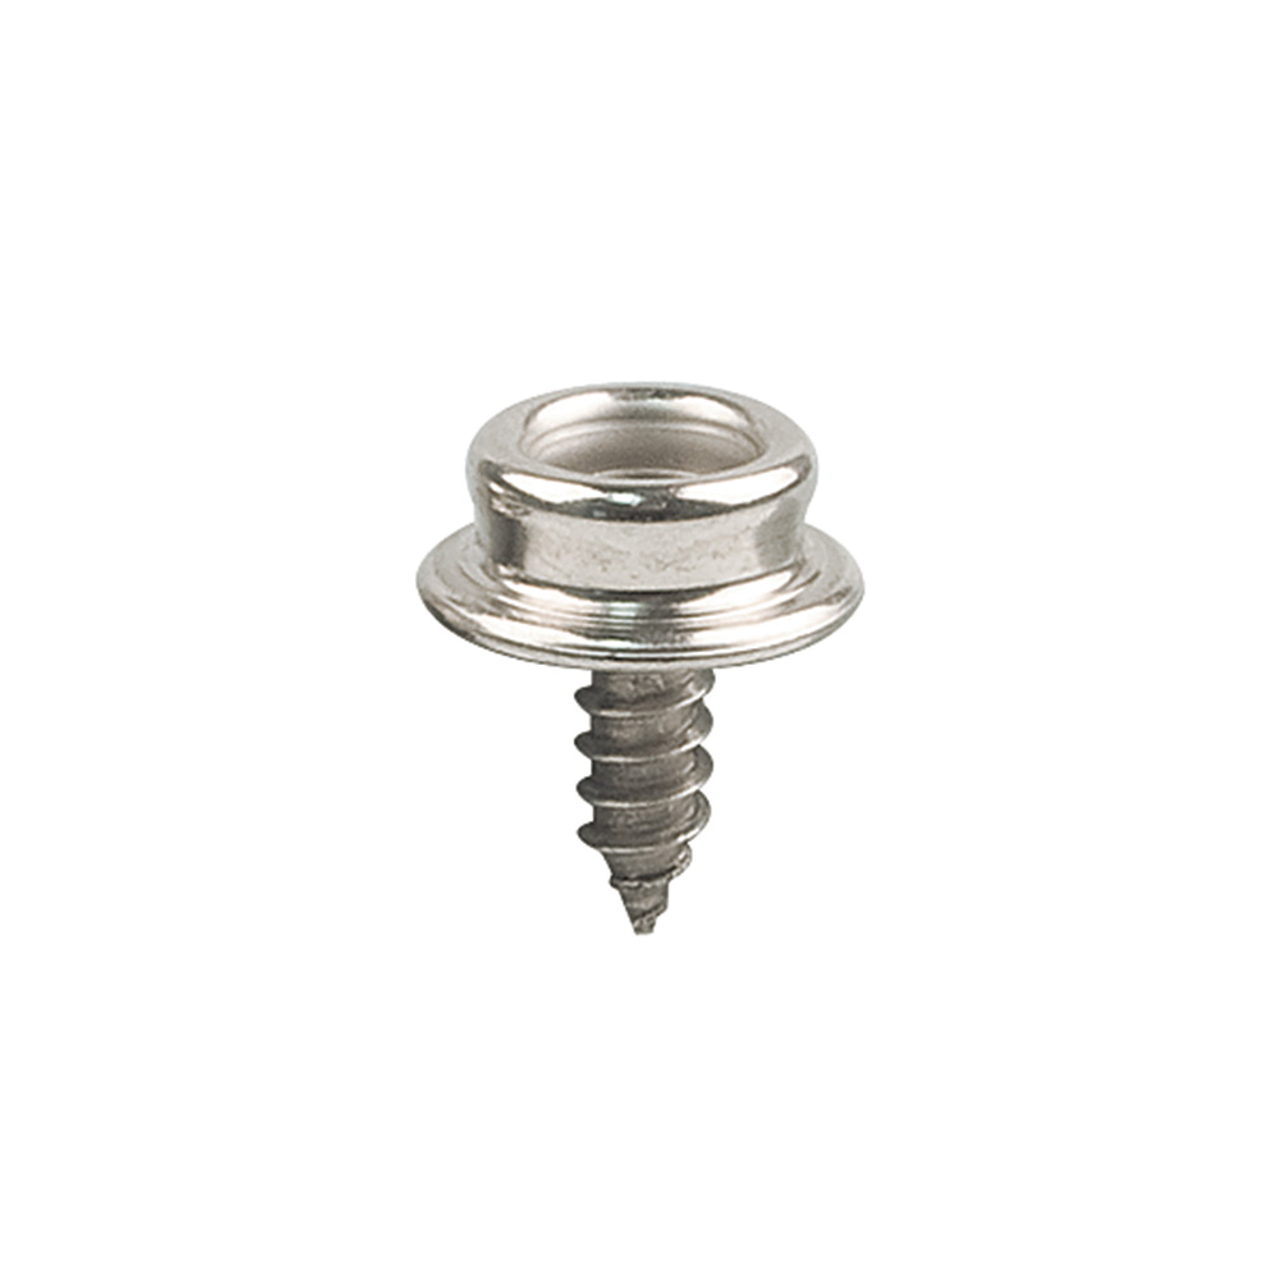 "Snap Fastener Screw Stud 3/8"", Stainless Steel-4pk (SFS-SS-1)"